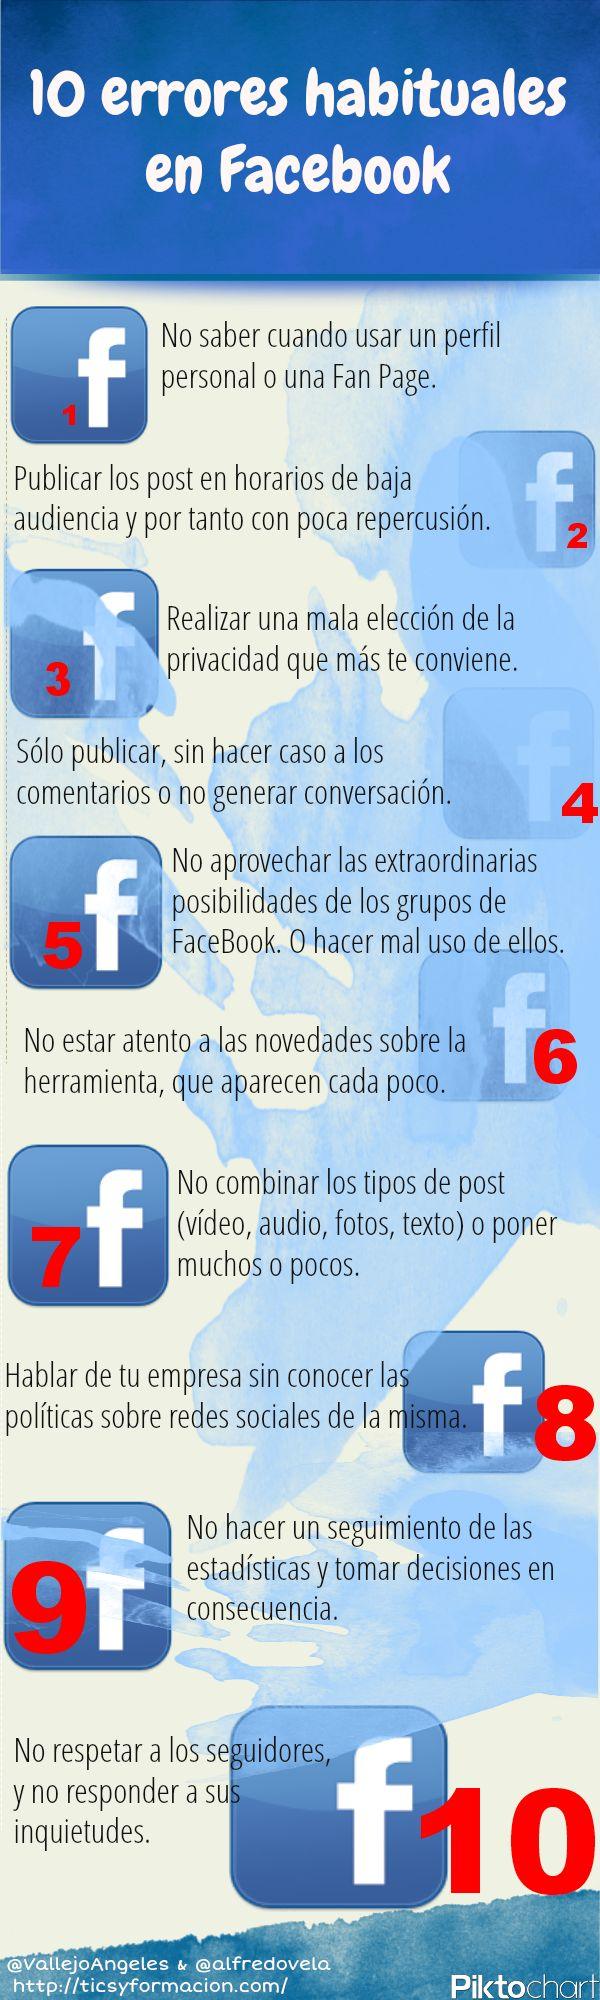 10 errores habituales en #Facebook